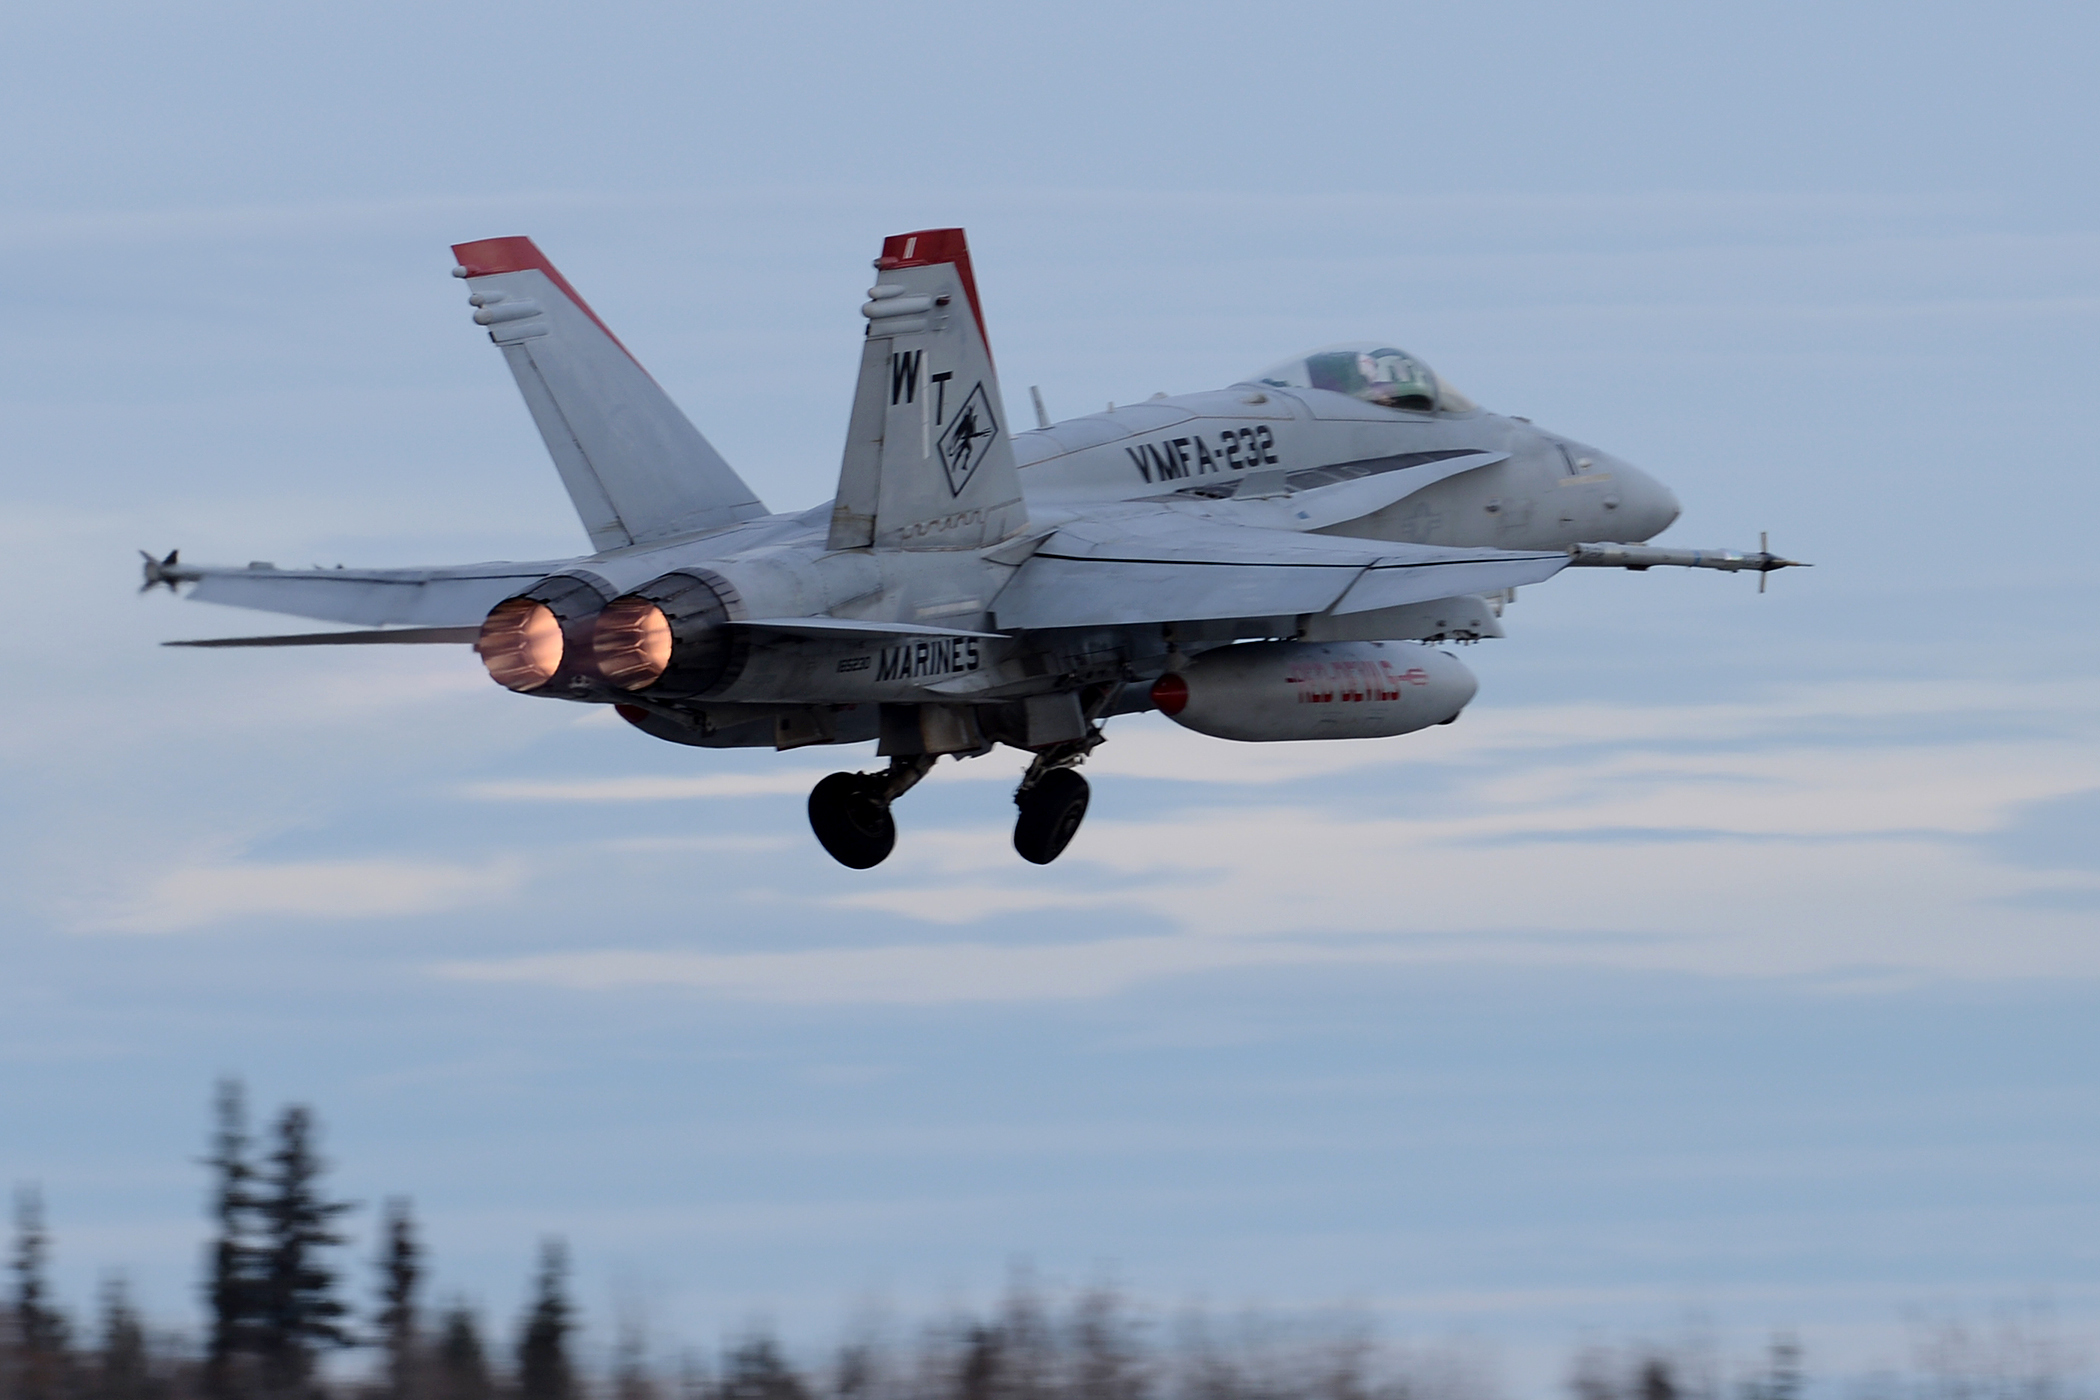 A U.S. Marine Corps F/A-18C Hornet aircraft from Marine Fighter Attack Squadron 232 out of Marine Corps Air Station Miramar, Calif., takes off from Eielson Air Force Base, Alaska, Oct. 10, 2016, for the first RED FLAG-Alaska (RF-A) 17-1 combat training mission. US Air Force photo.